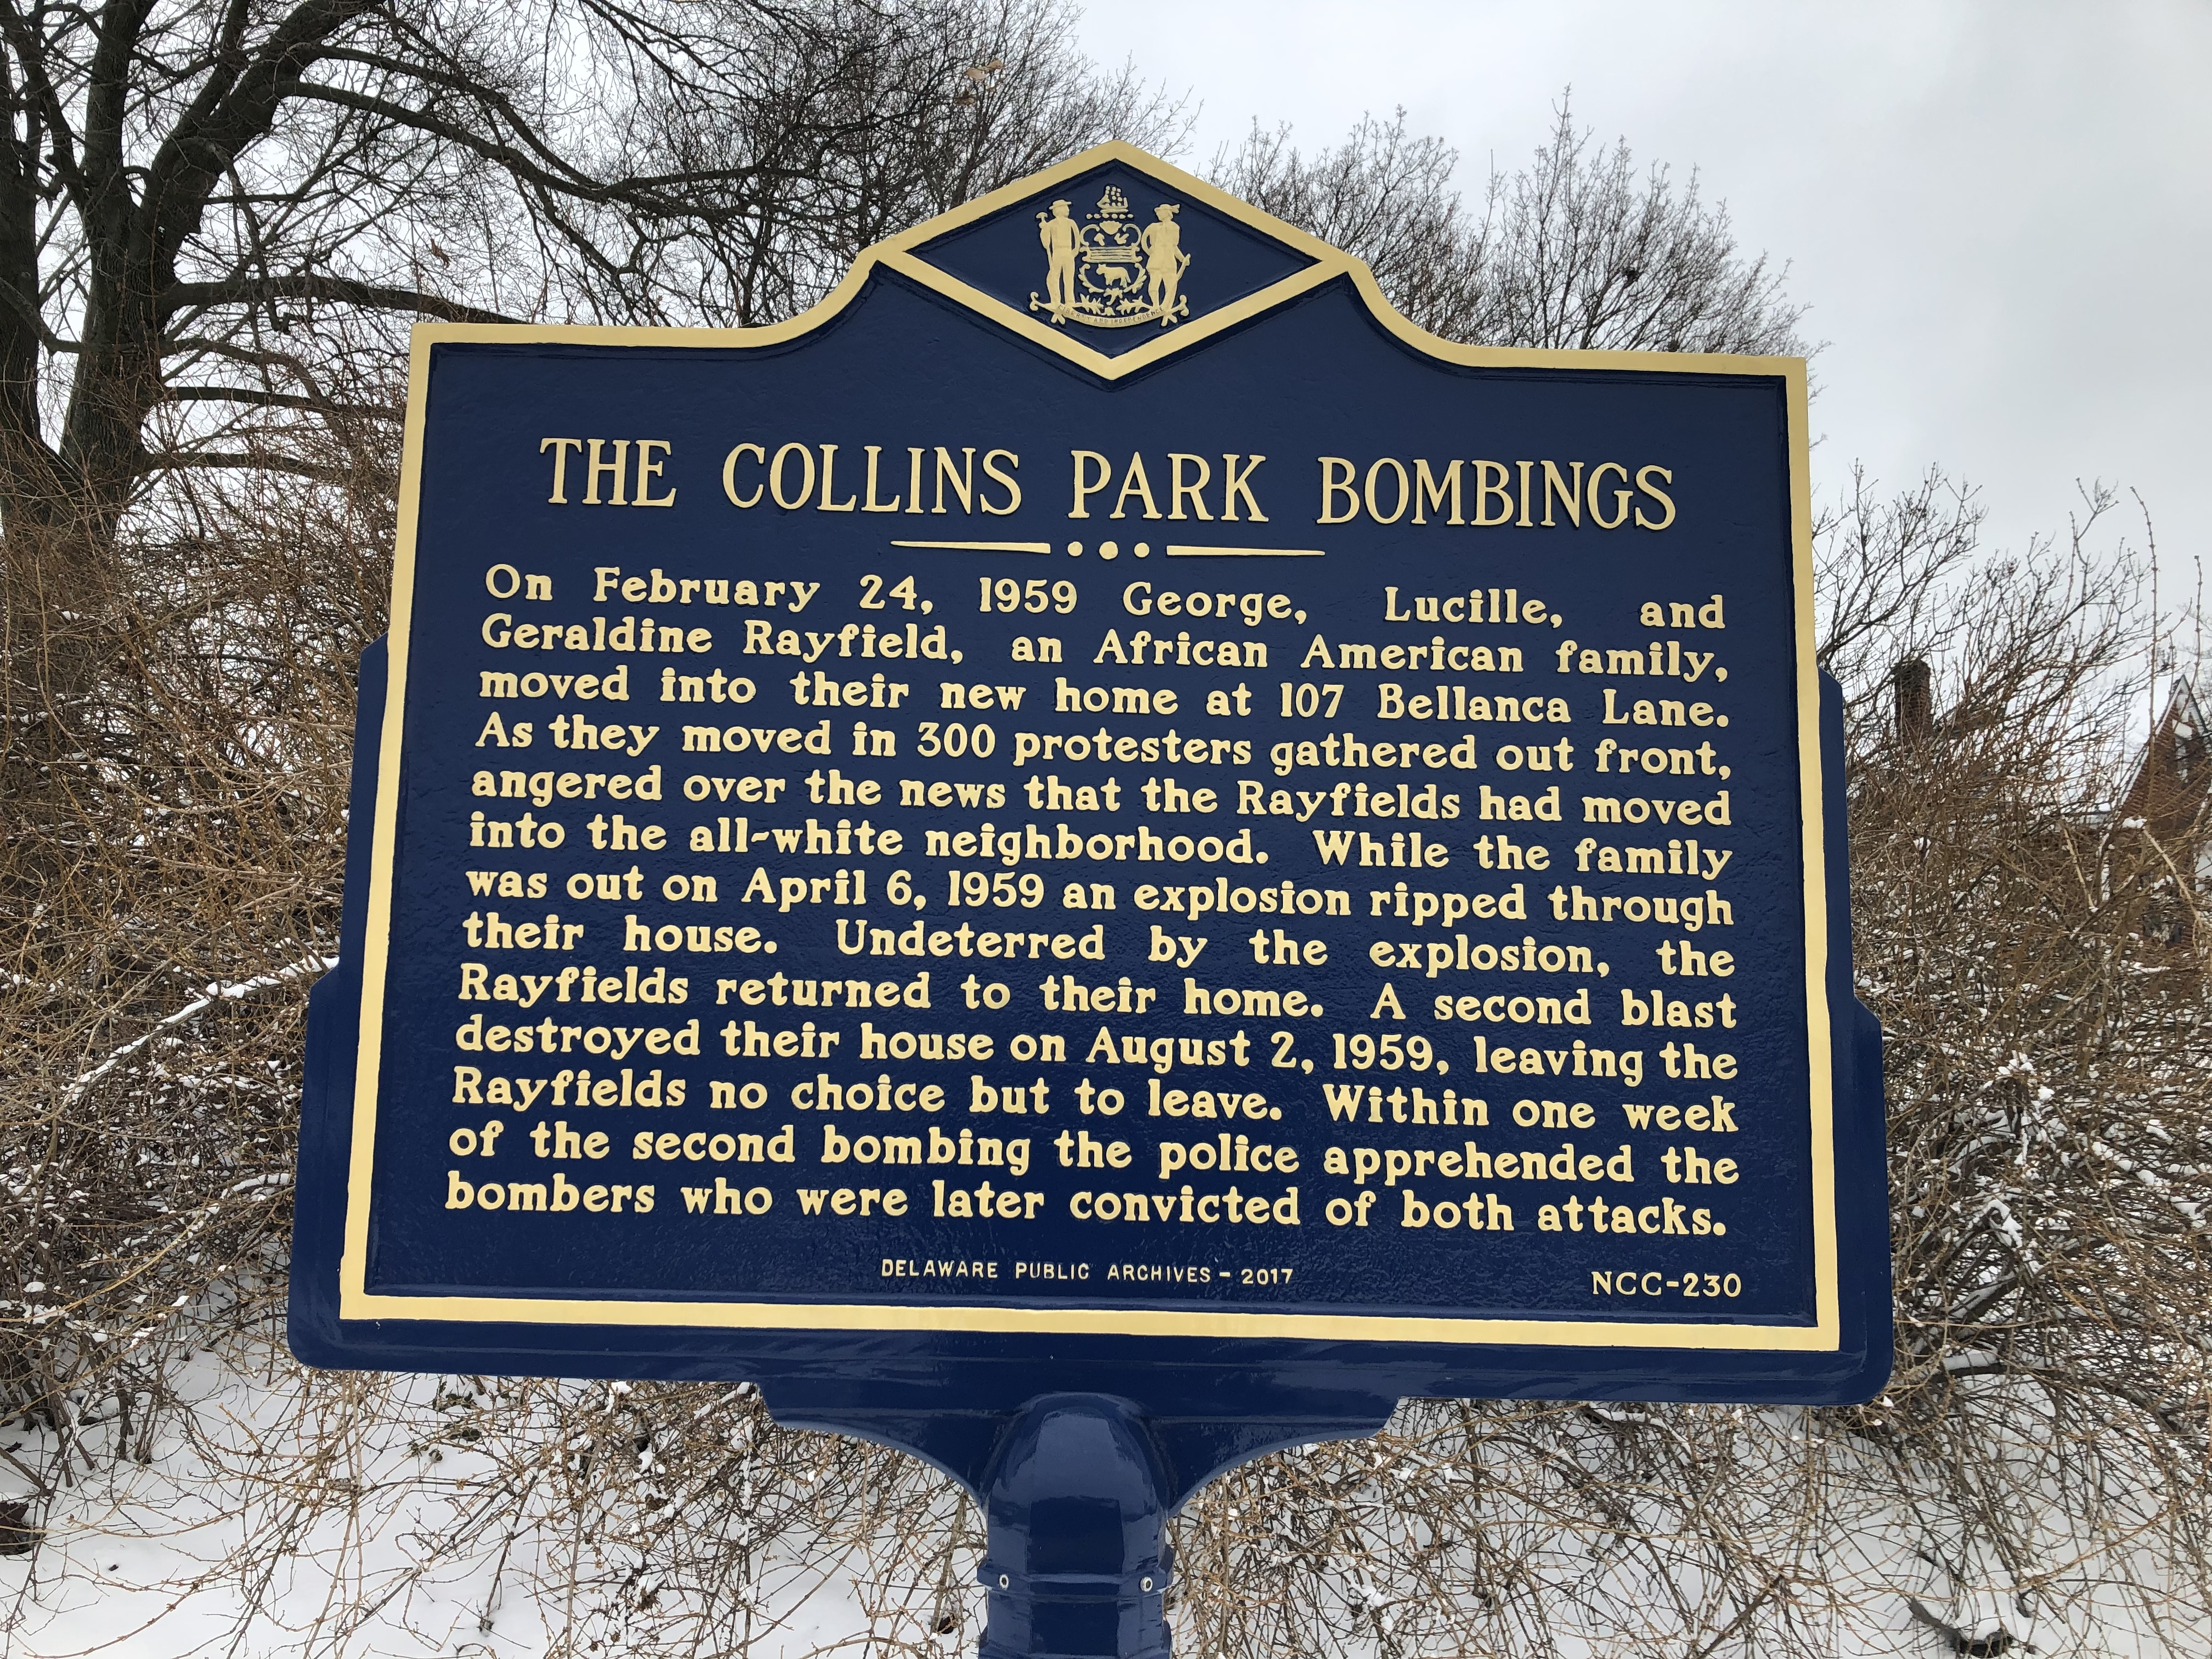 The Collins Park Bombings Marker